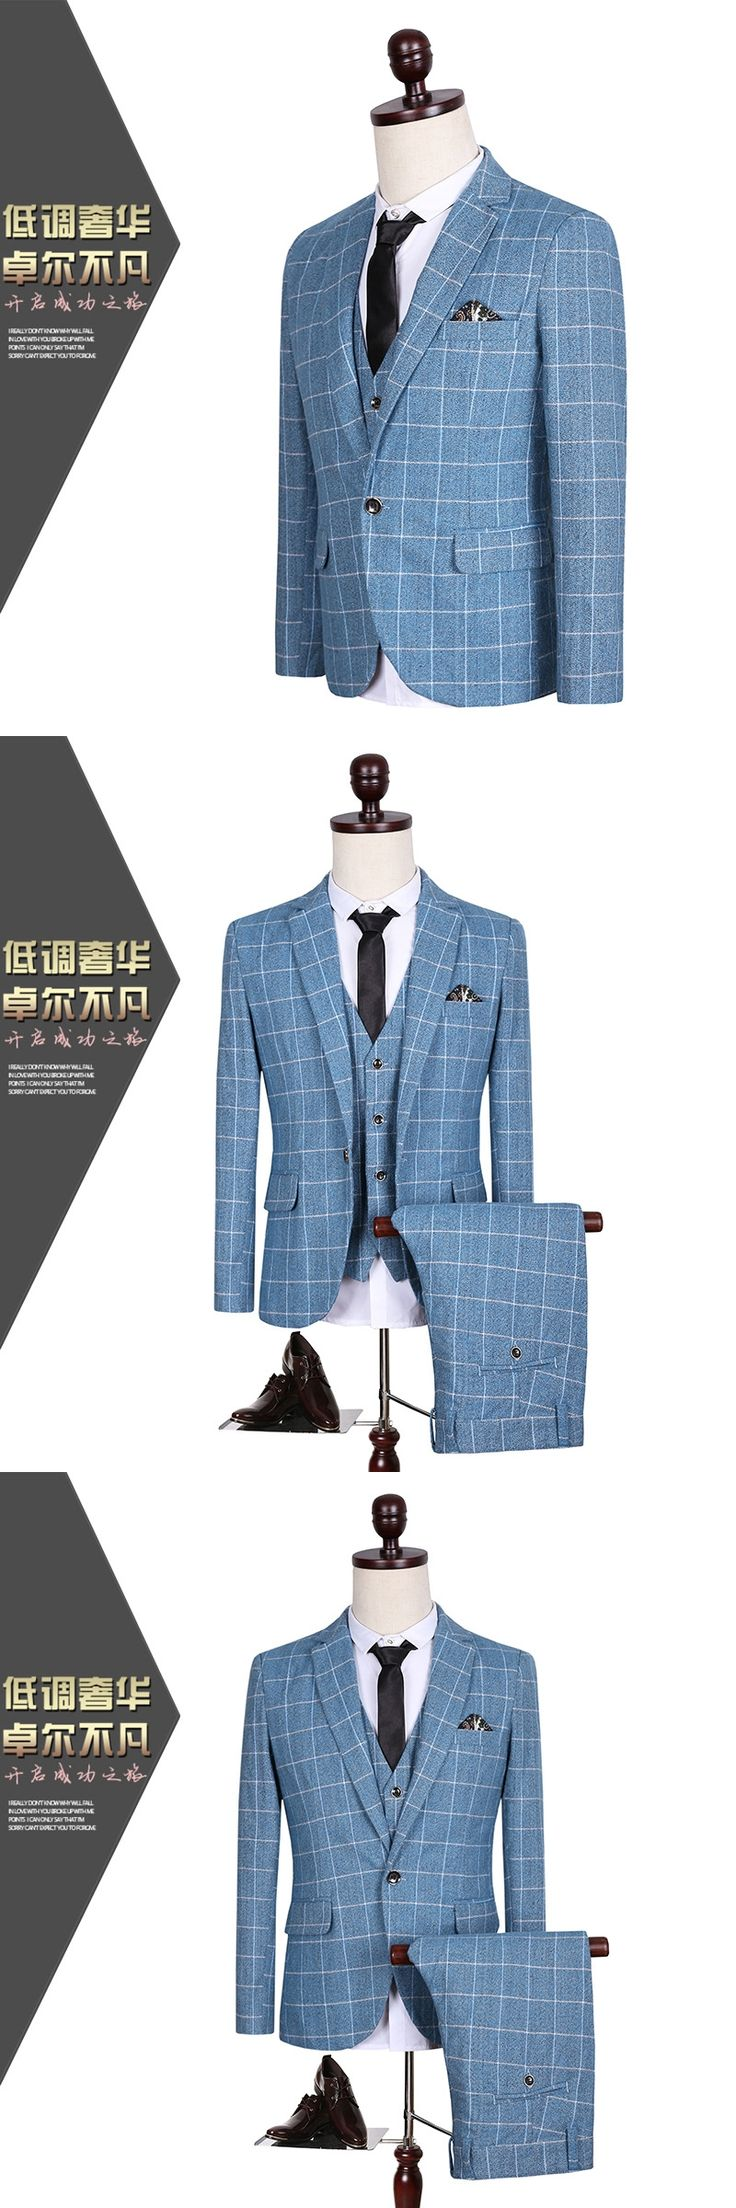 CCXO2017 three-piece suit men's suits evening party Blue suit fashion Grid suit